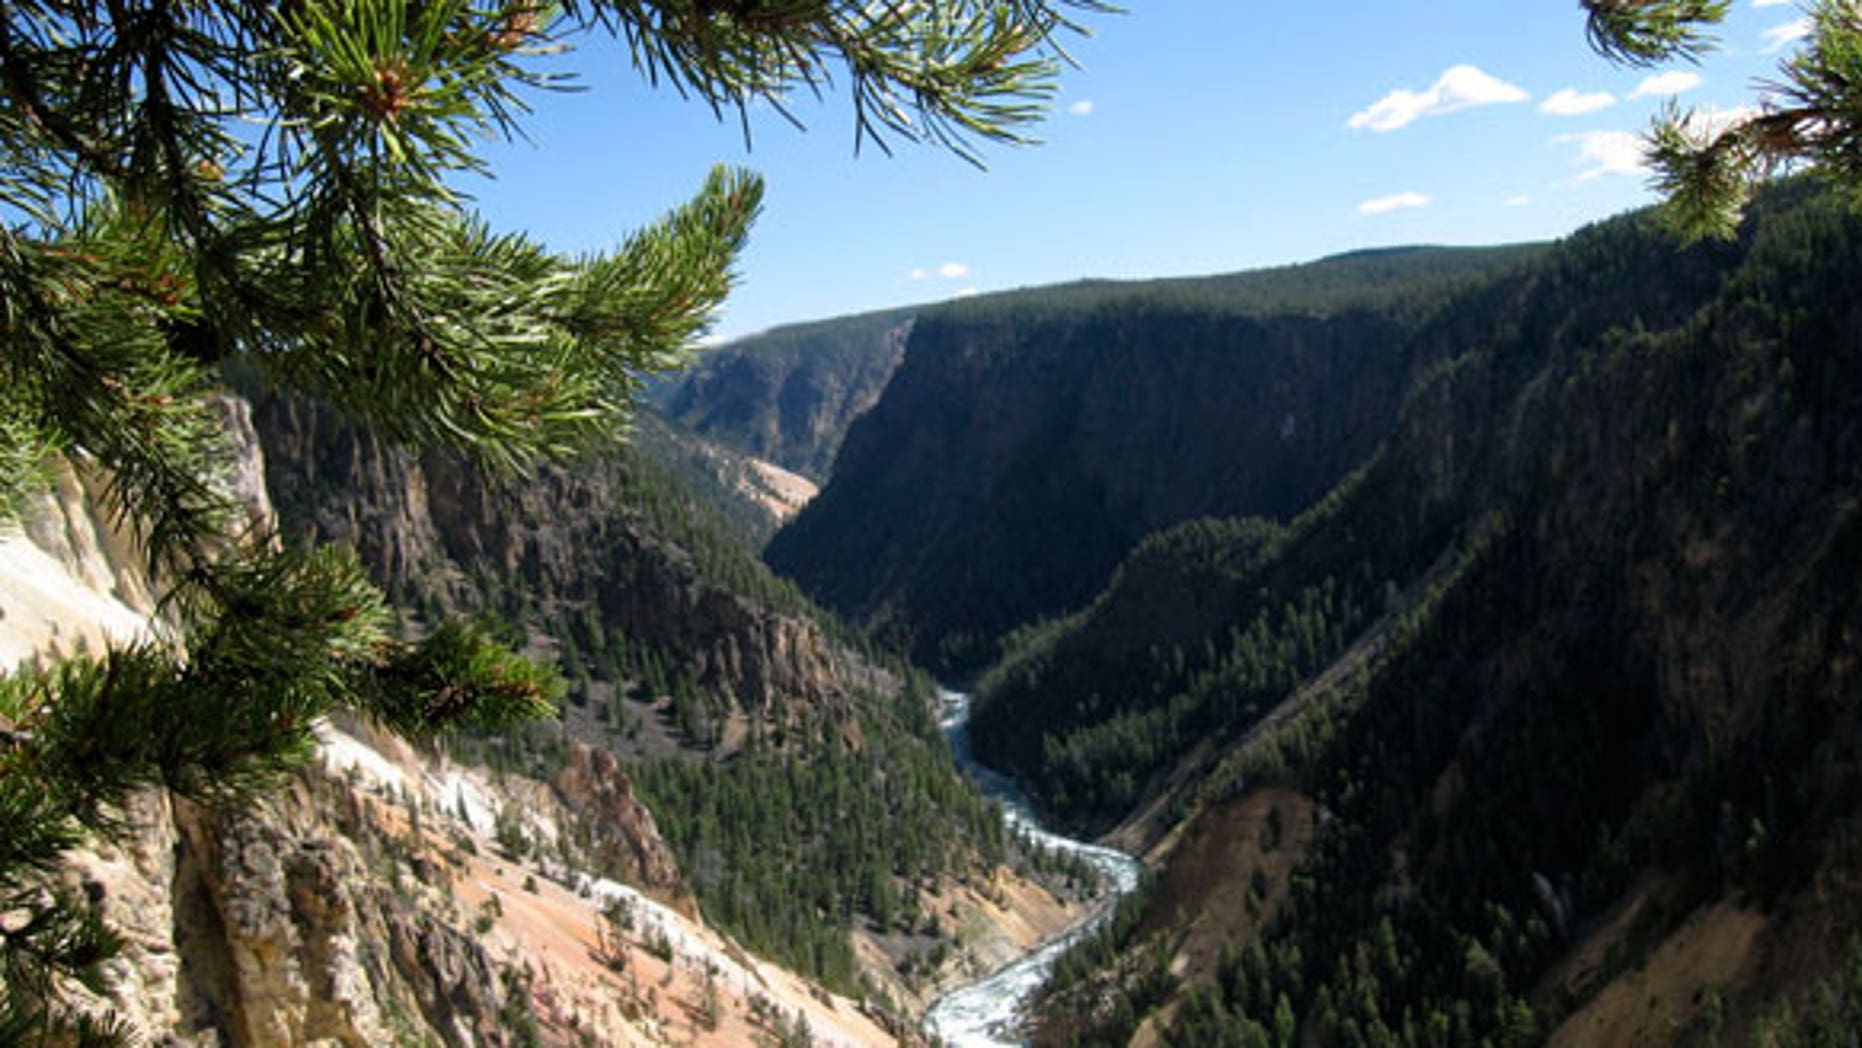 Yellowstone is one of the most popular national park destinations.